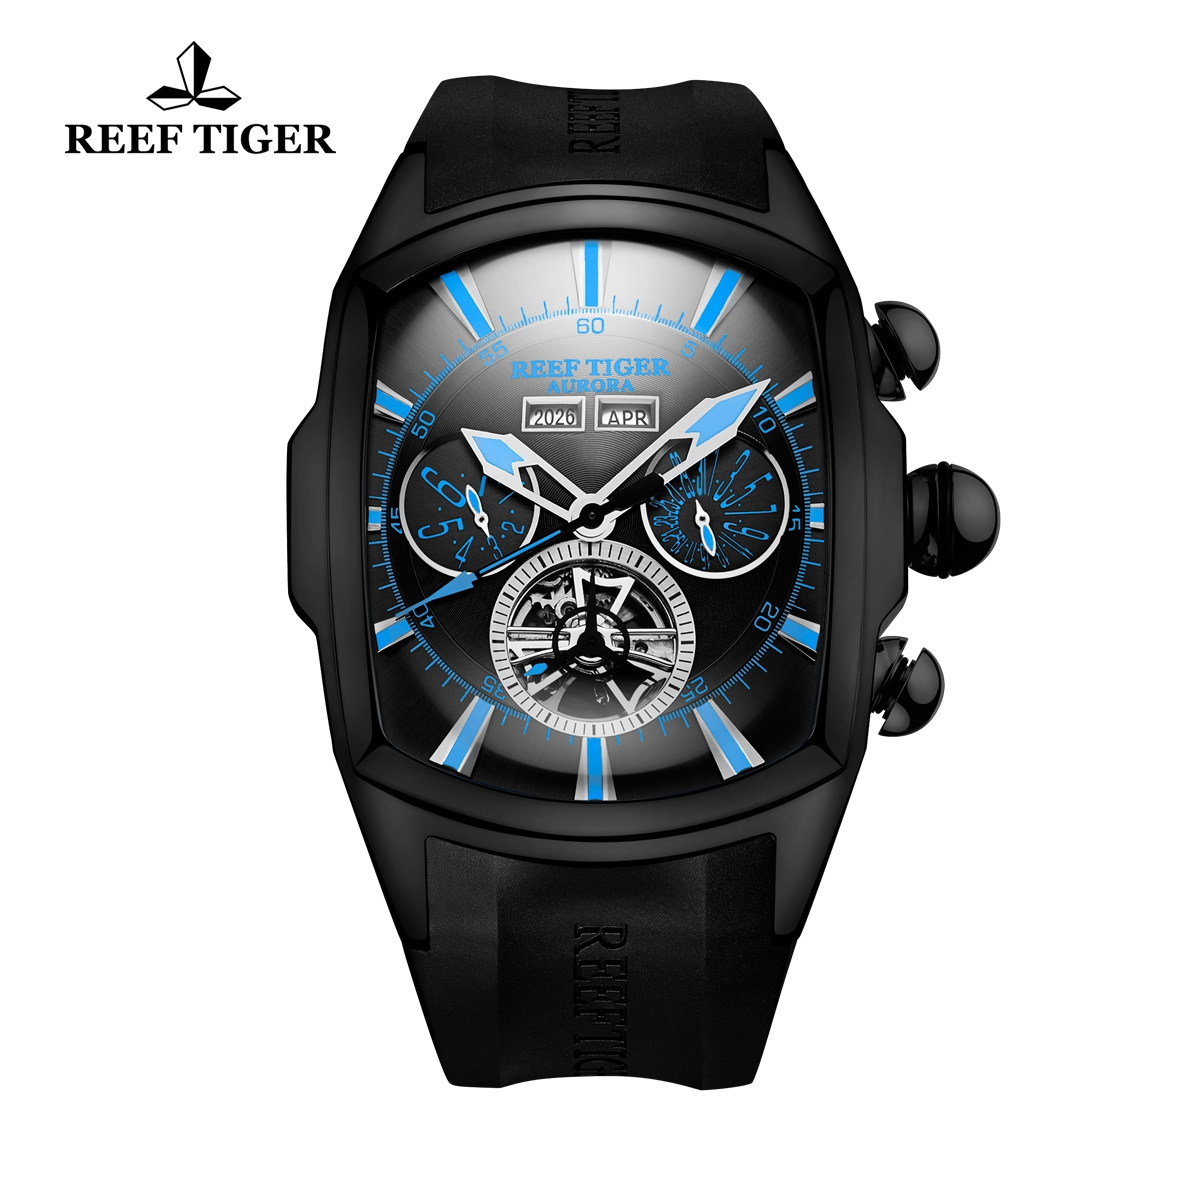 Reef Tiger Automatic Sport Watches PVD Case Black Dial Rubber Strap Watches RGA3069-BBBL